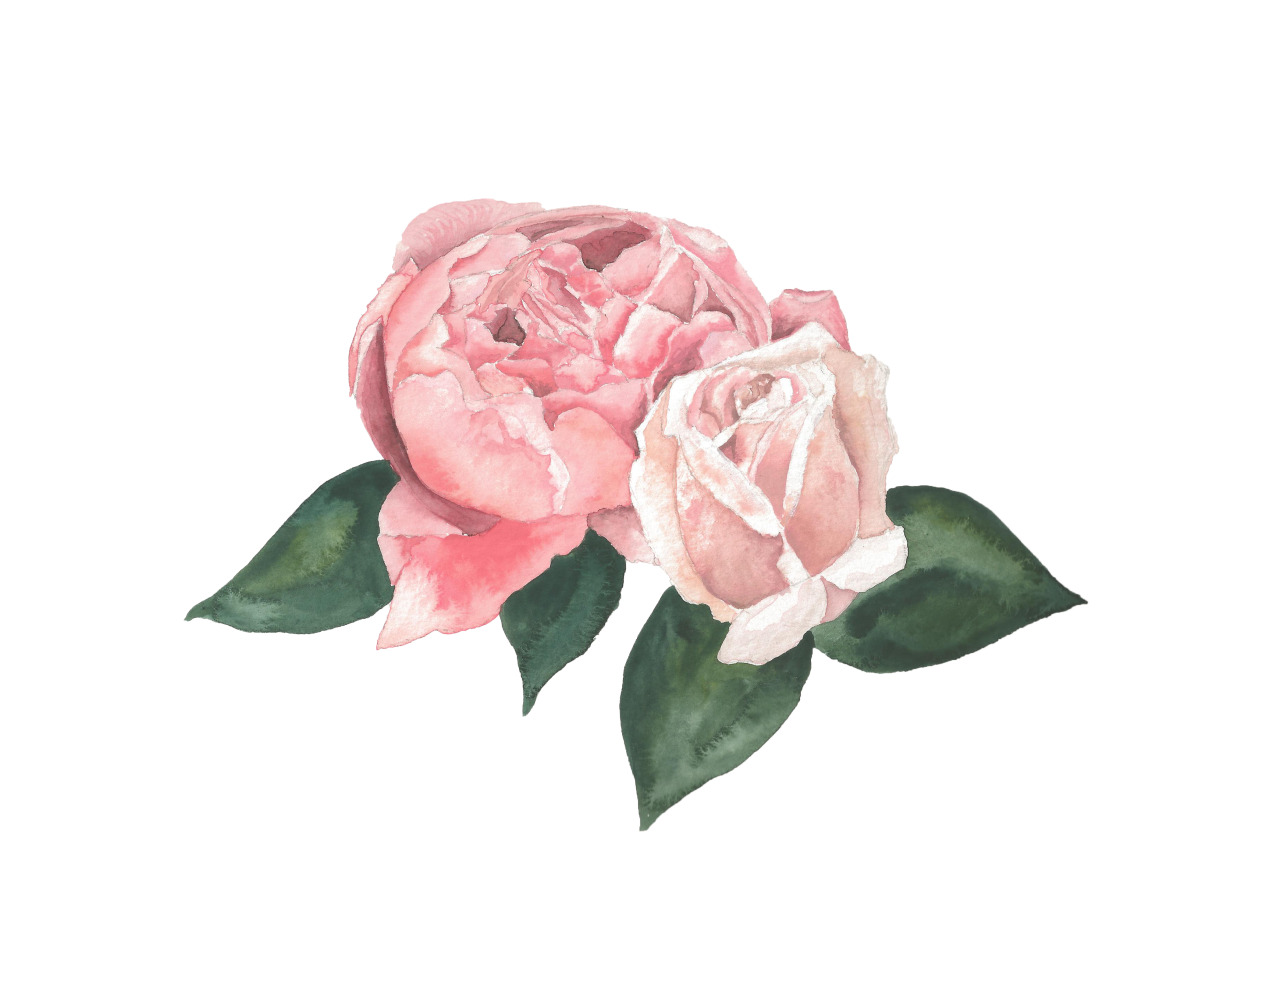 Flowers tumblr drawing at getdrawings free for personal use 1280x1006 hoontoidly roses tumblr drawing images mightylinksfo